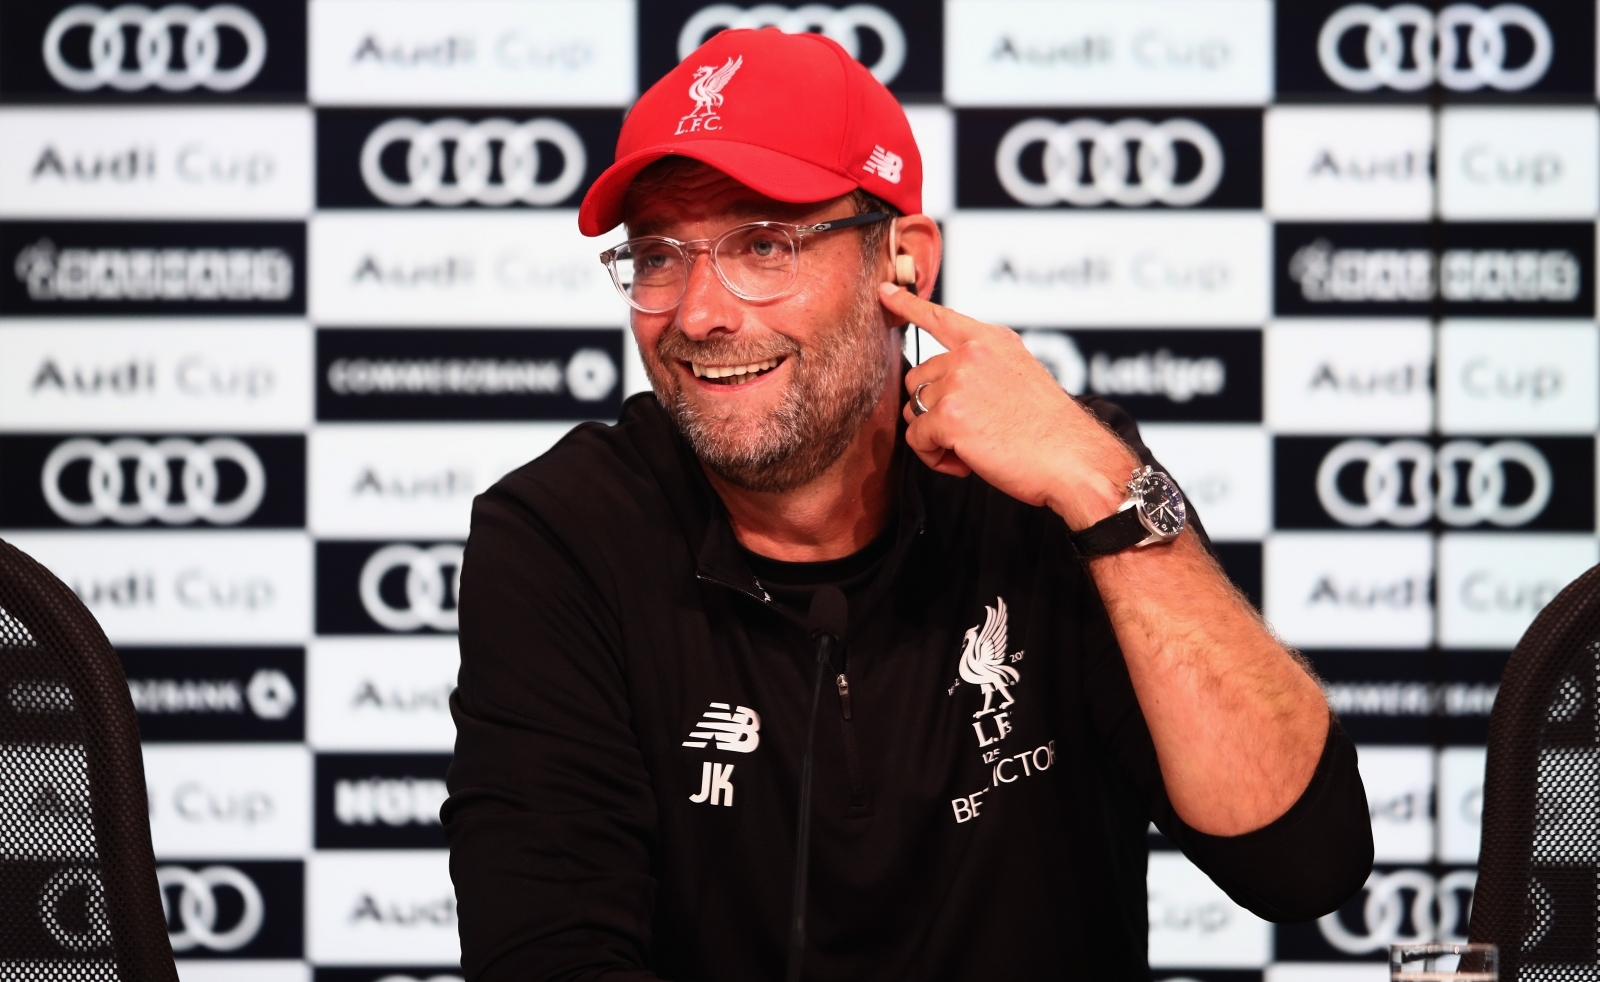 Champions League play-off draw: Liverpool face Hoffenheim, Napoli meet Nice